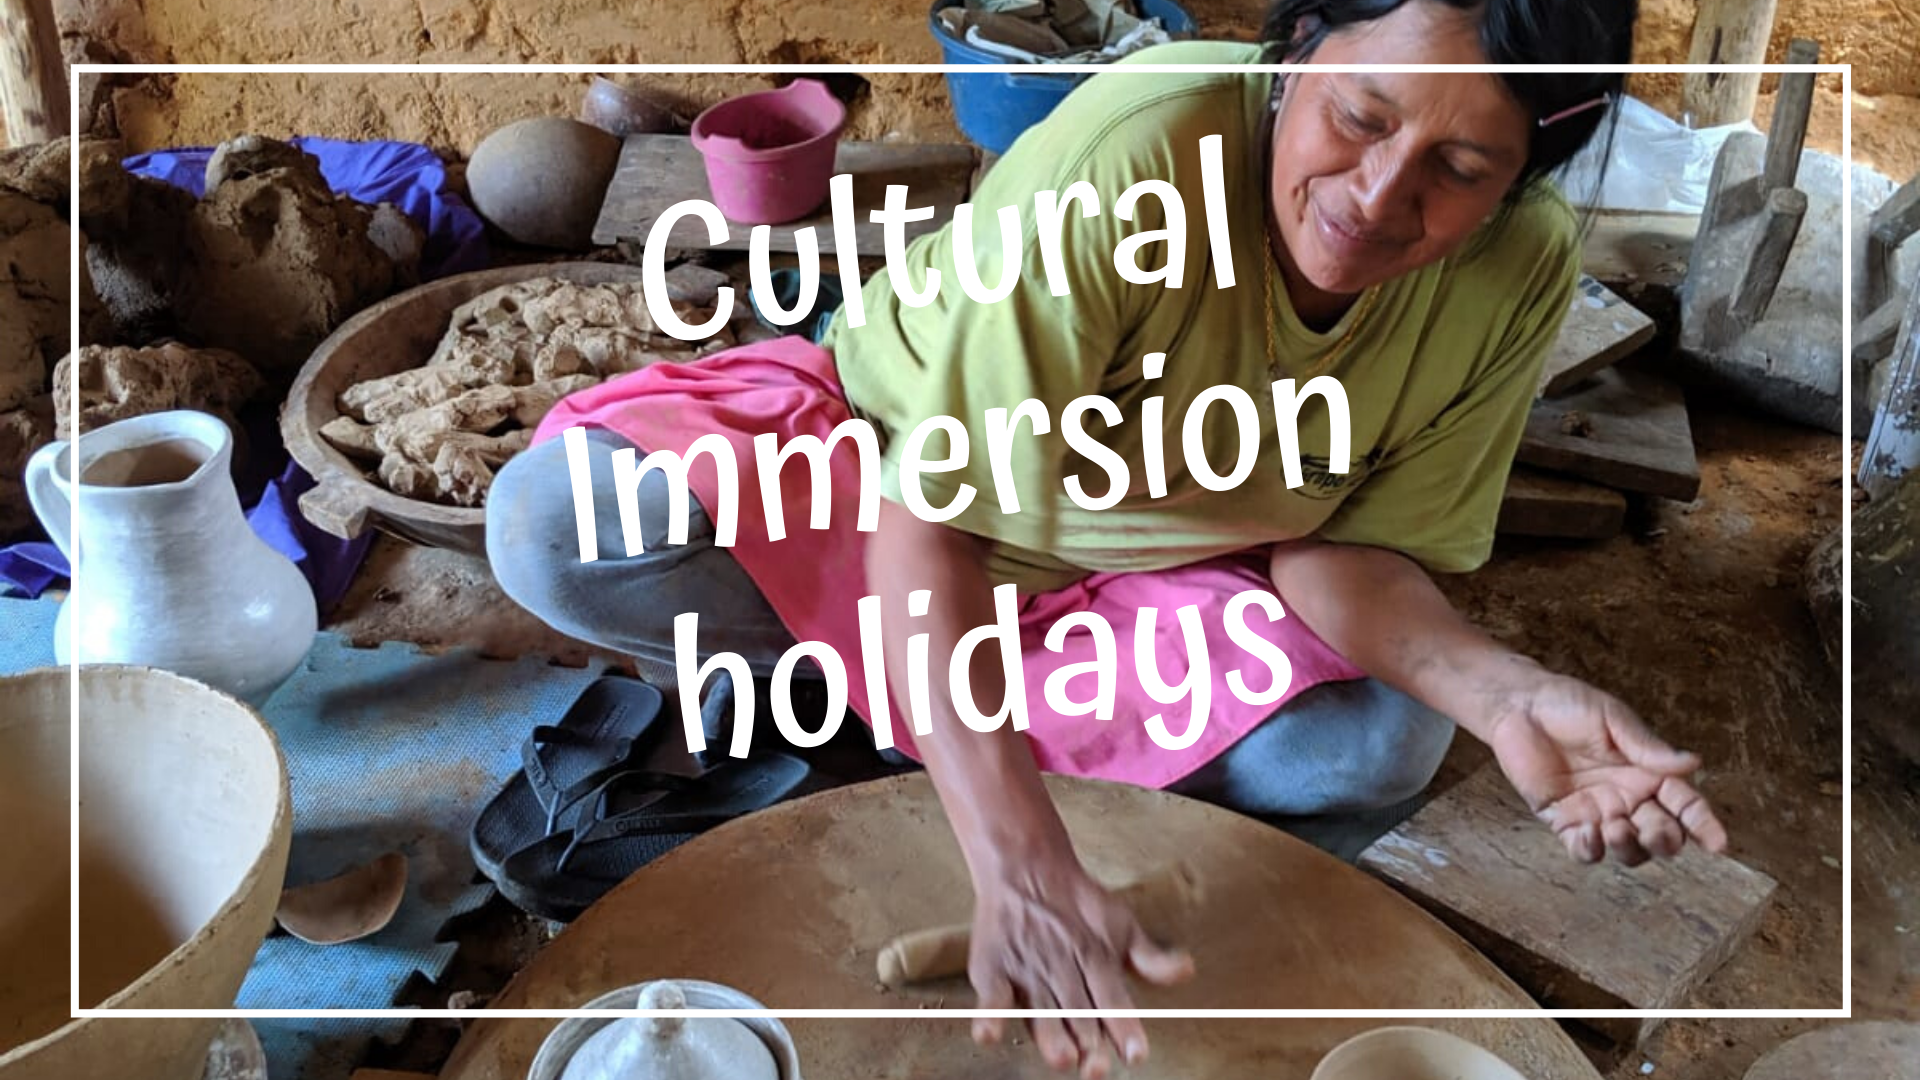 Cultural immersion holidays